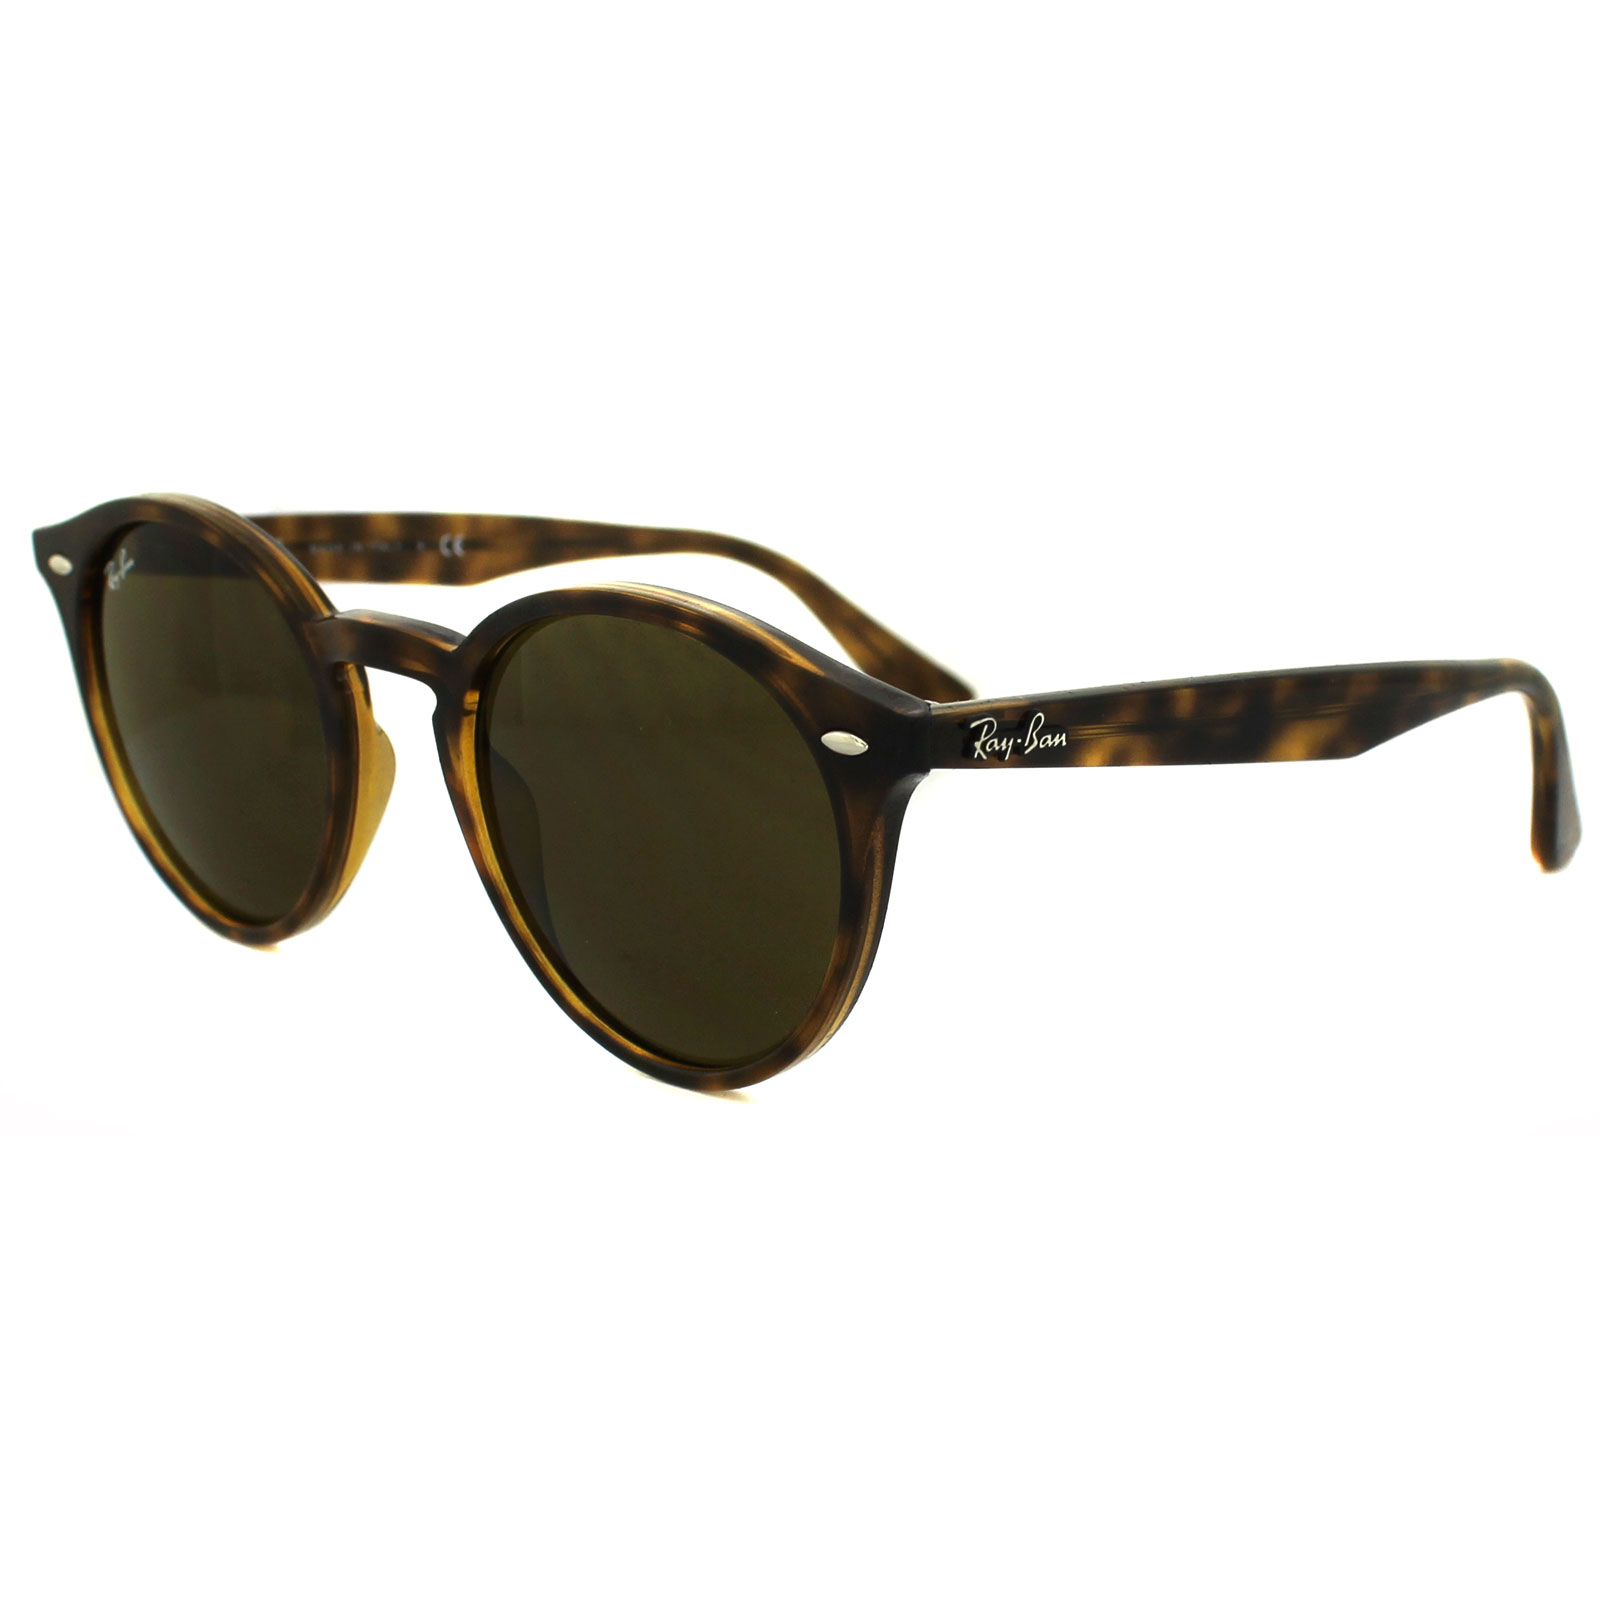 Sentinel Ray-Ban Sunglasses 2180 710/73 Tortoise Brown B-15